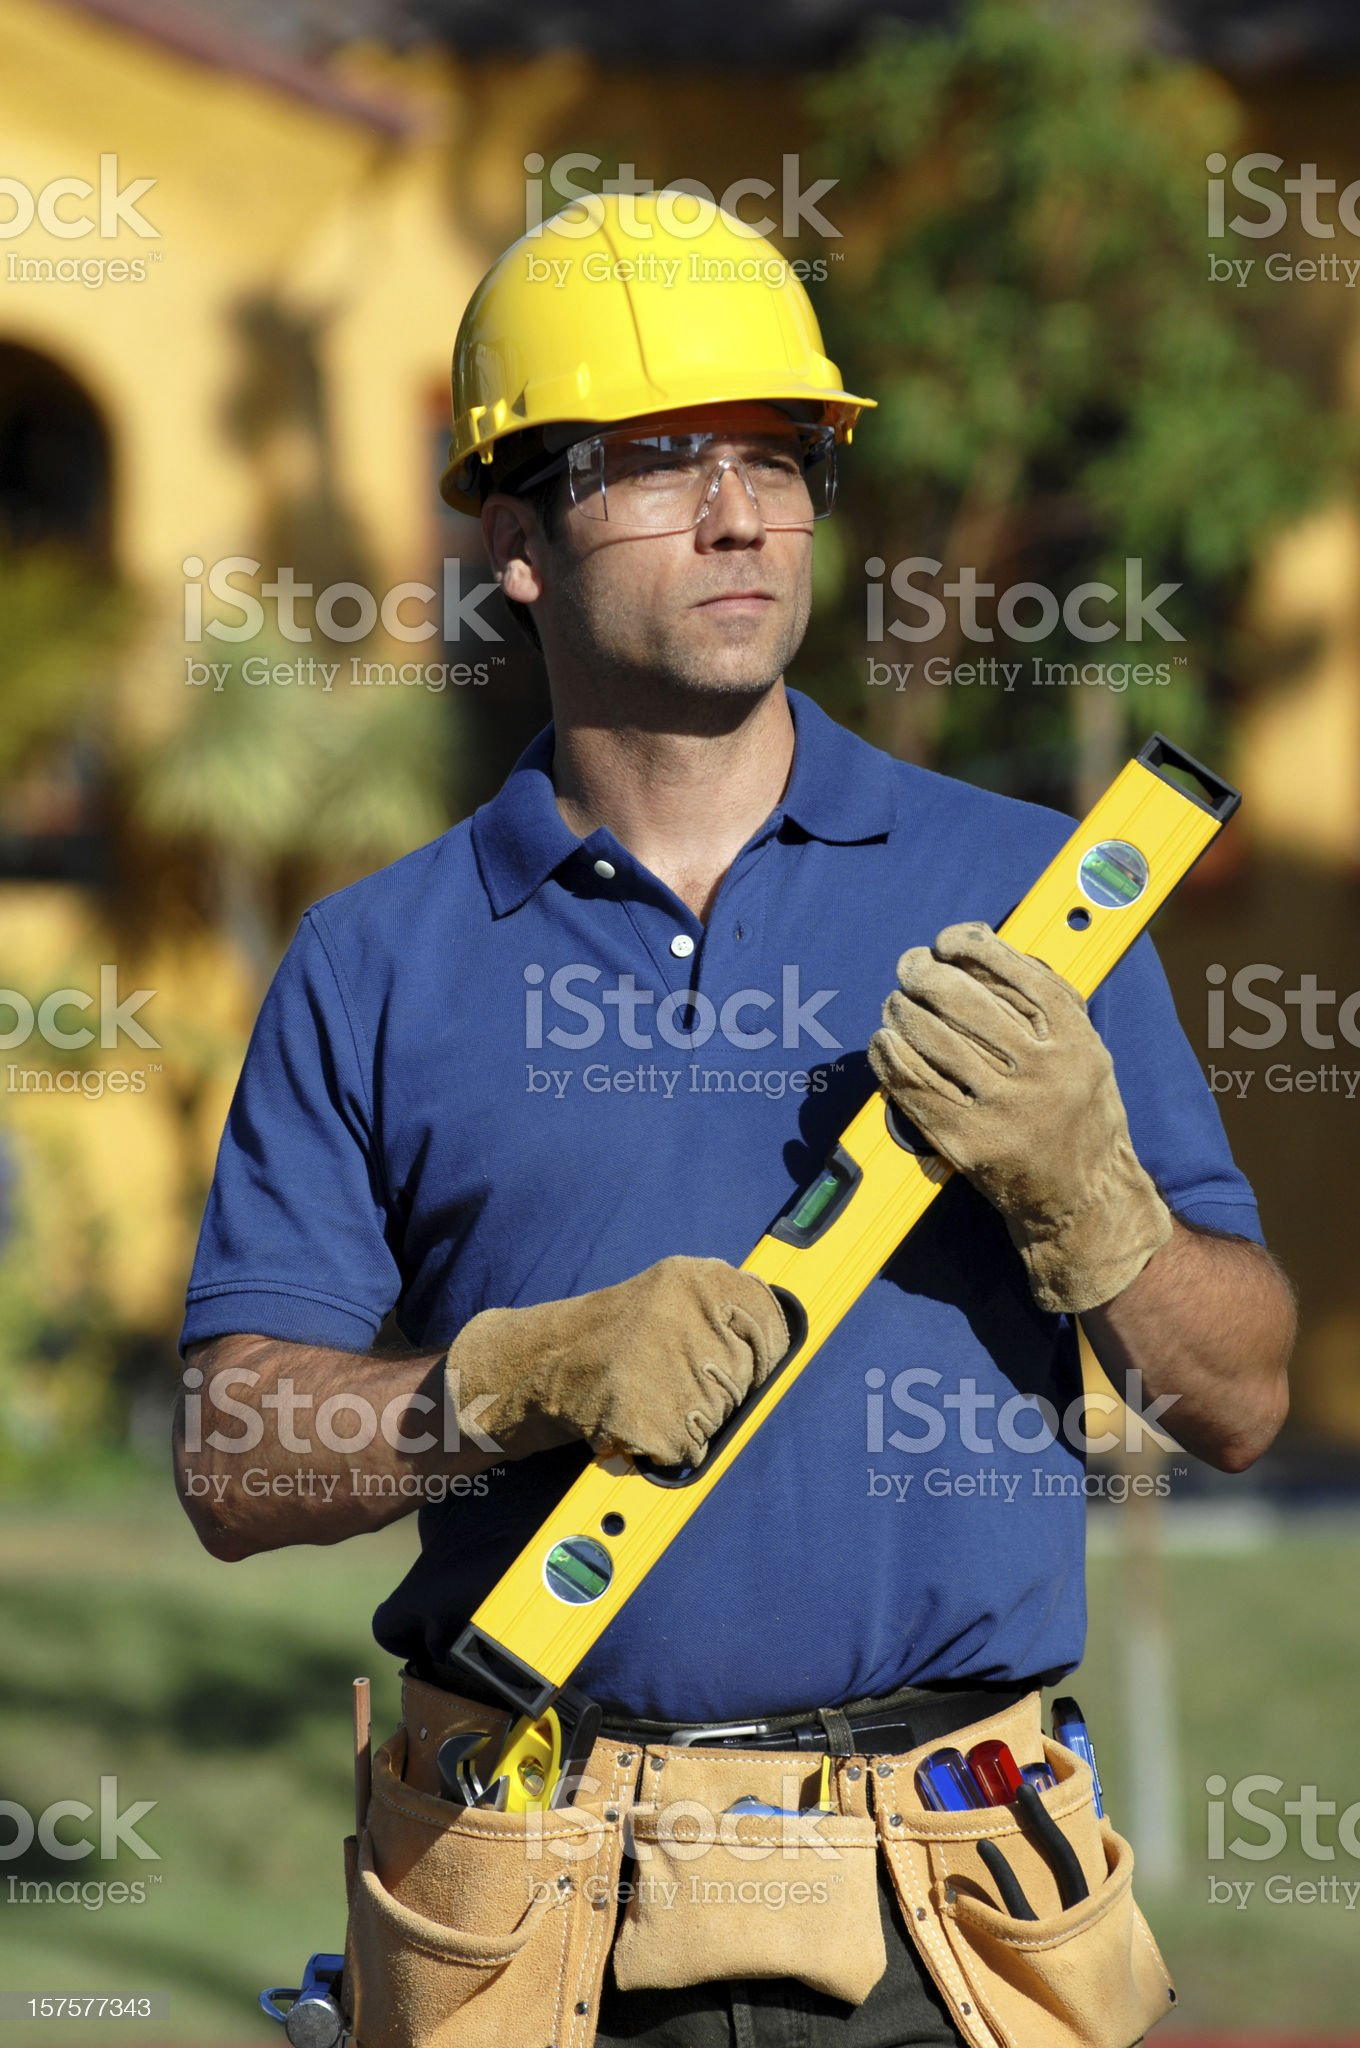 Construction Worker Contractor on Site royalty-free stock photo